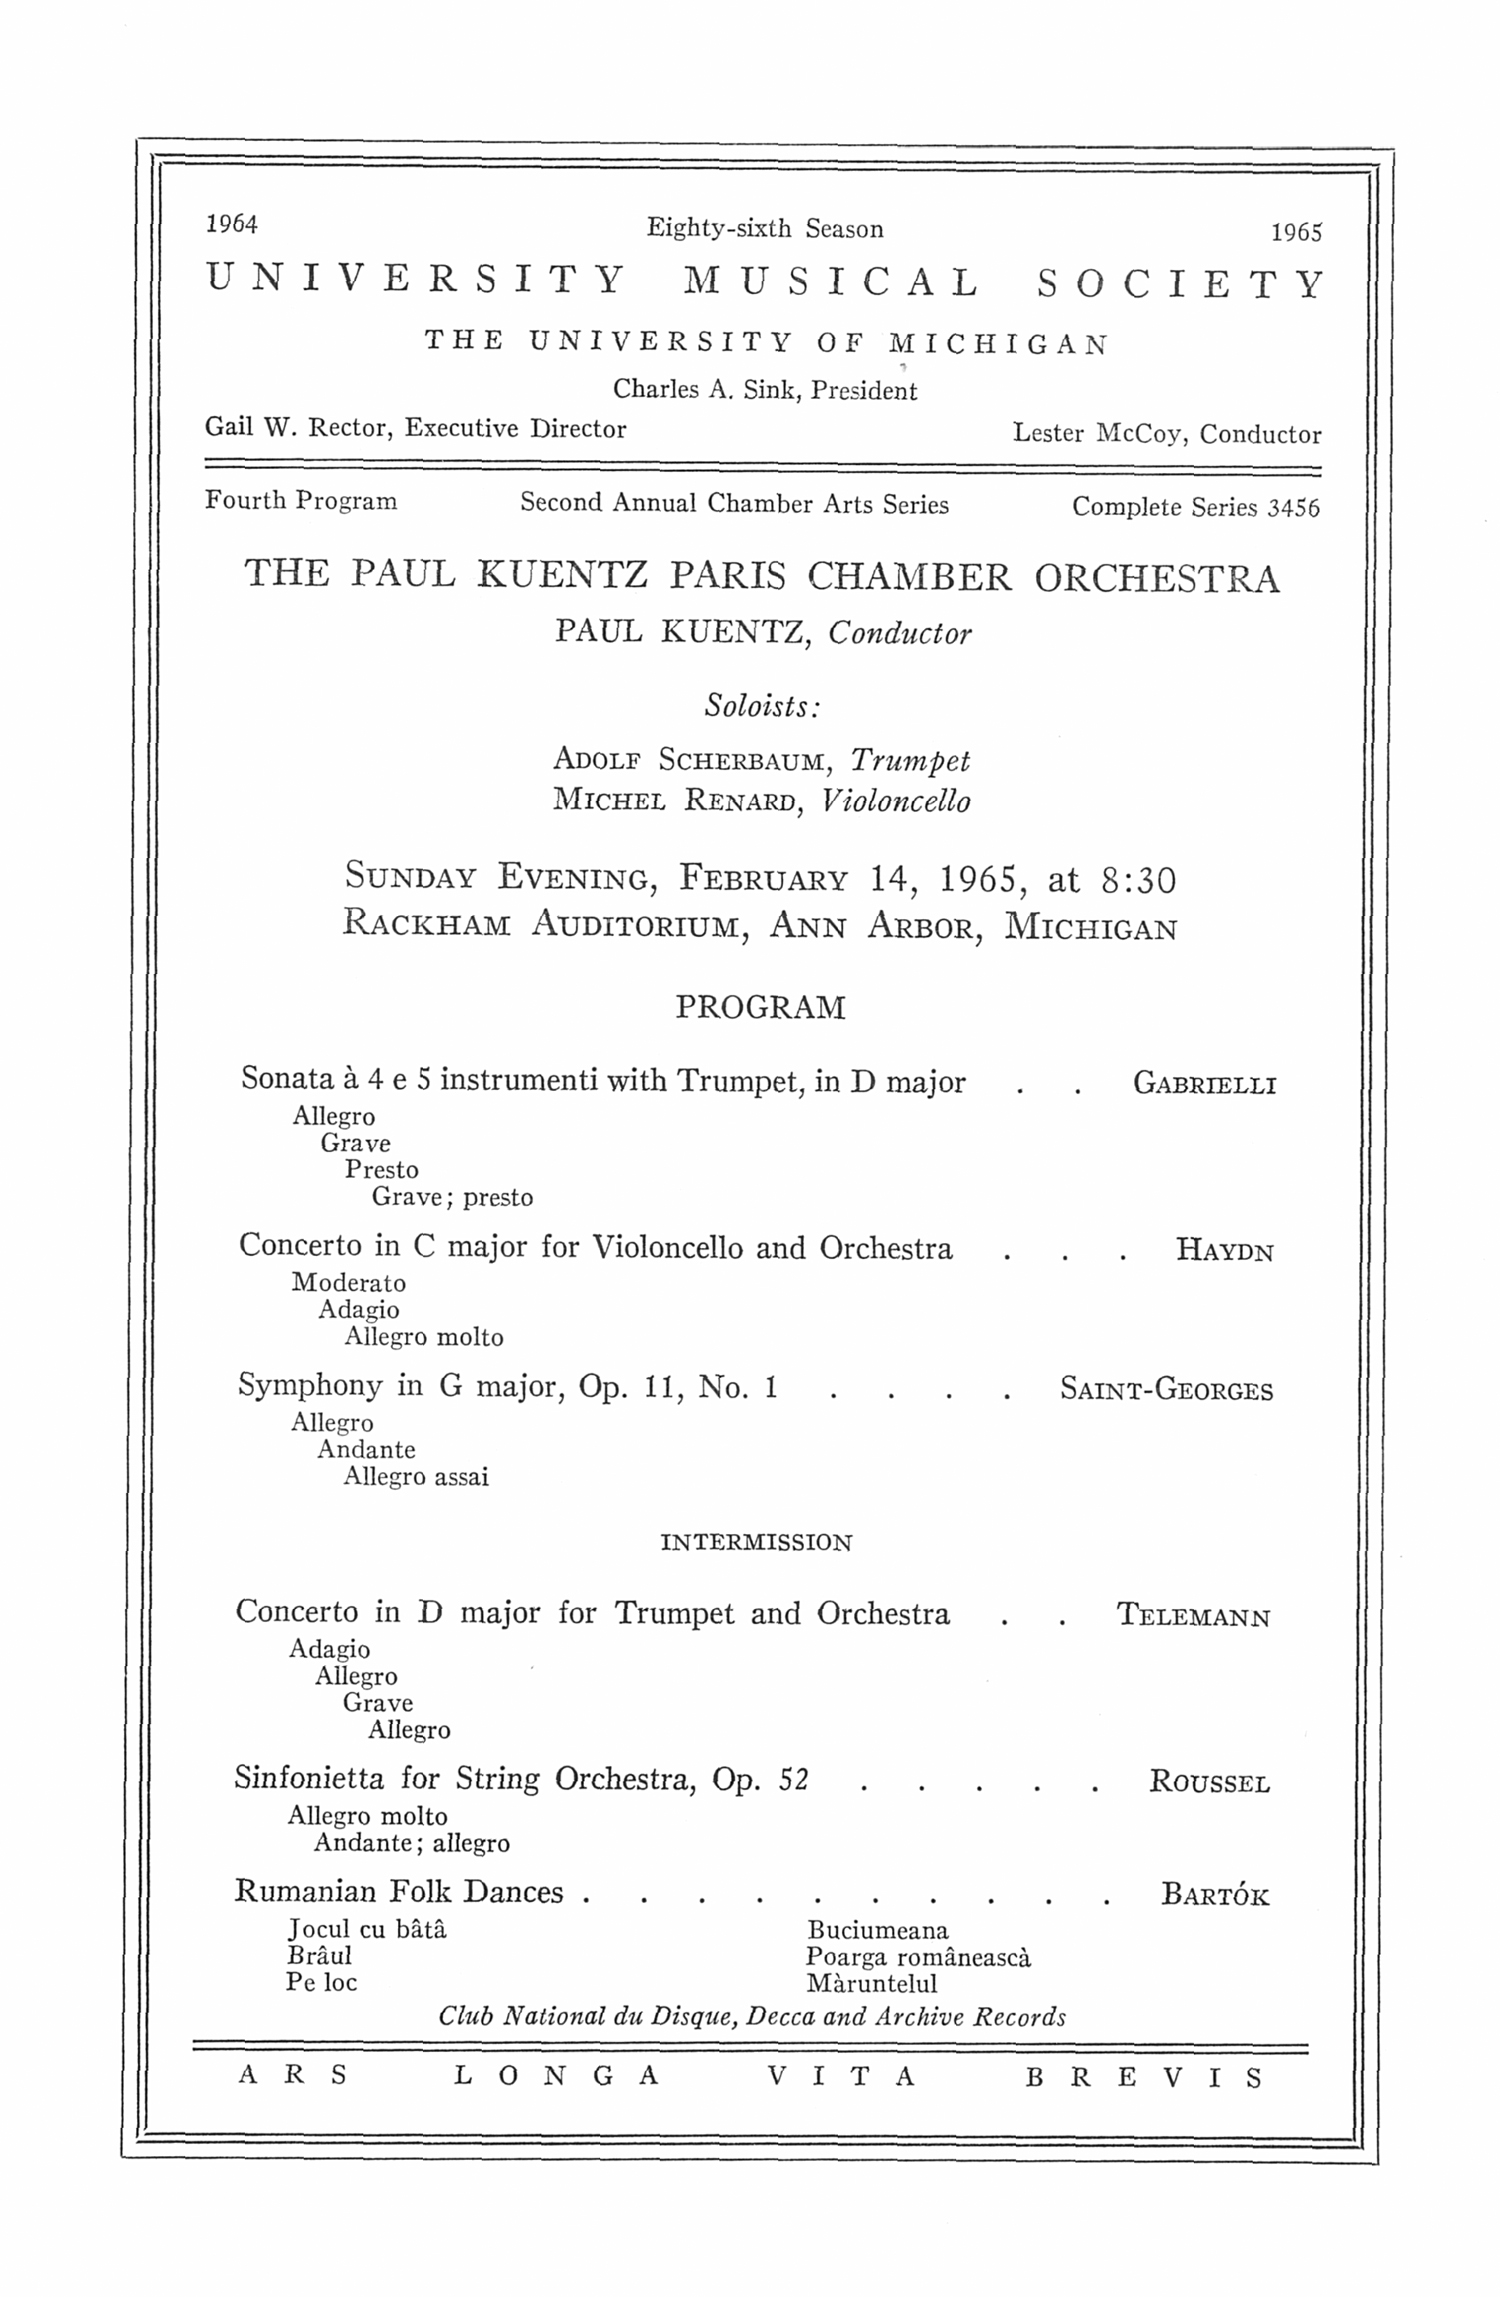 UMS Concert Program, February 14, 1965: The Paul Kuentz Paris Chamber Orchestra --  image